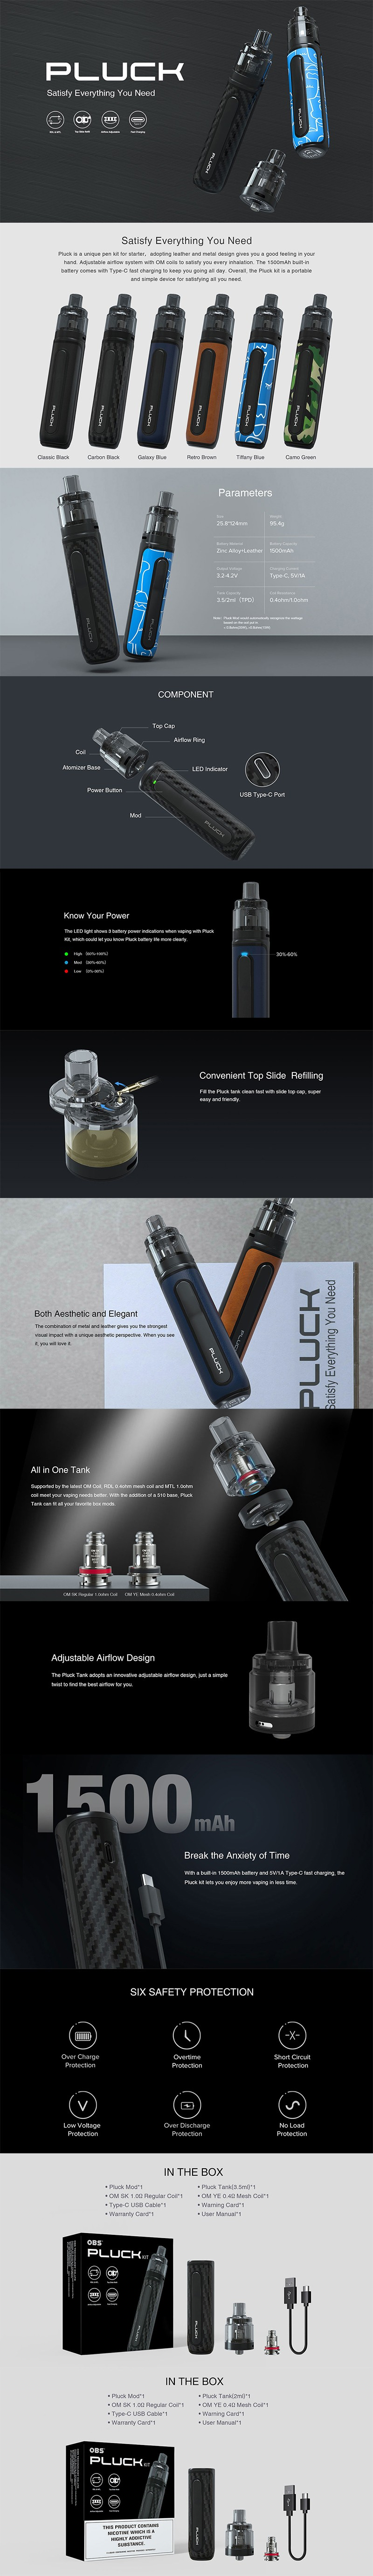 Authentic OBS Pluck Pod Mod Vape Starter Kit